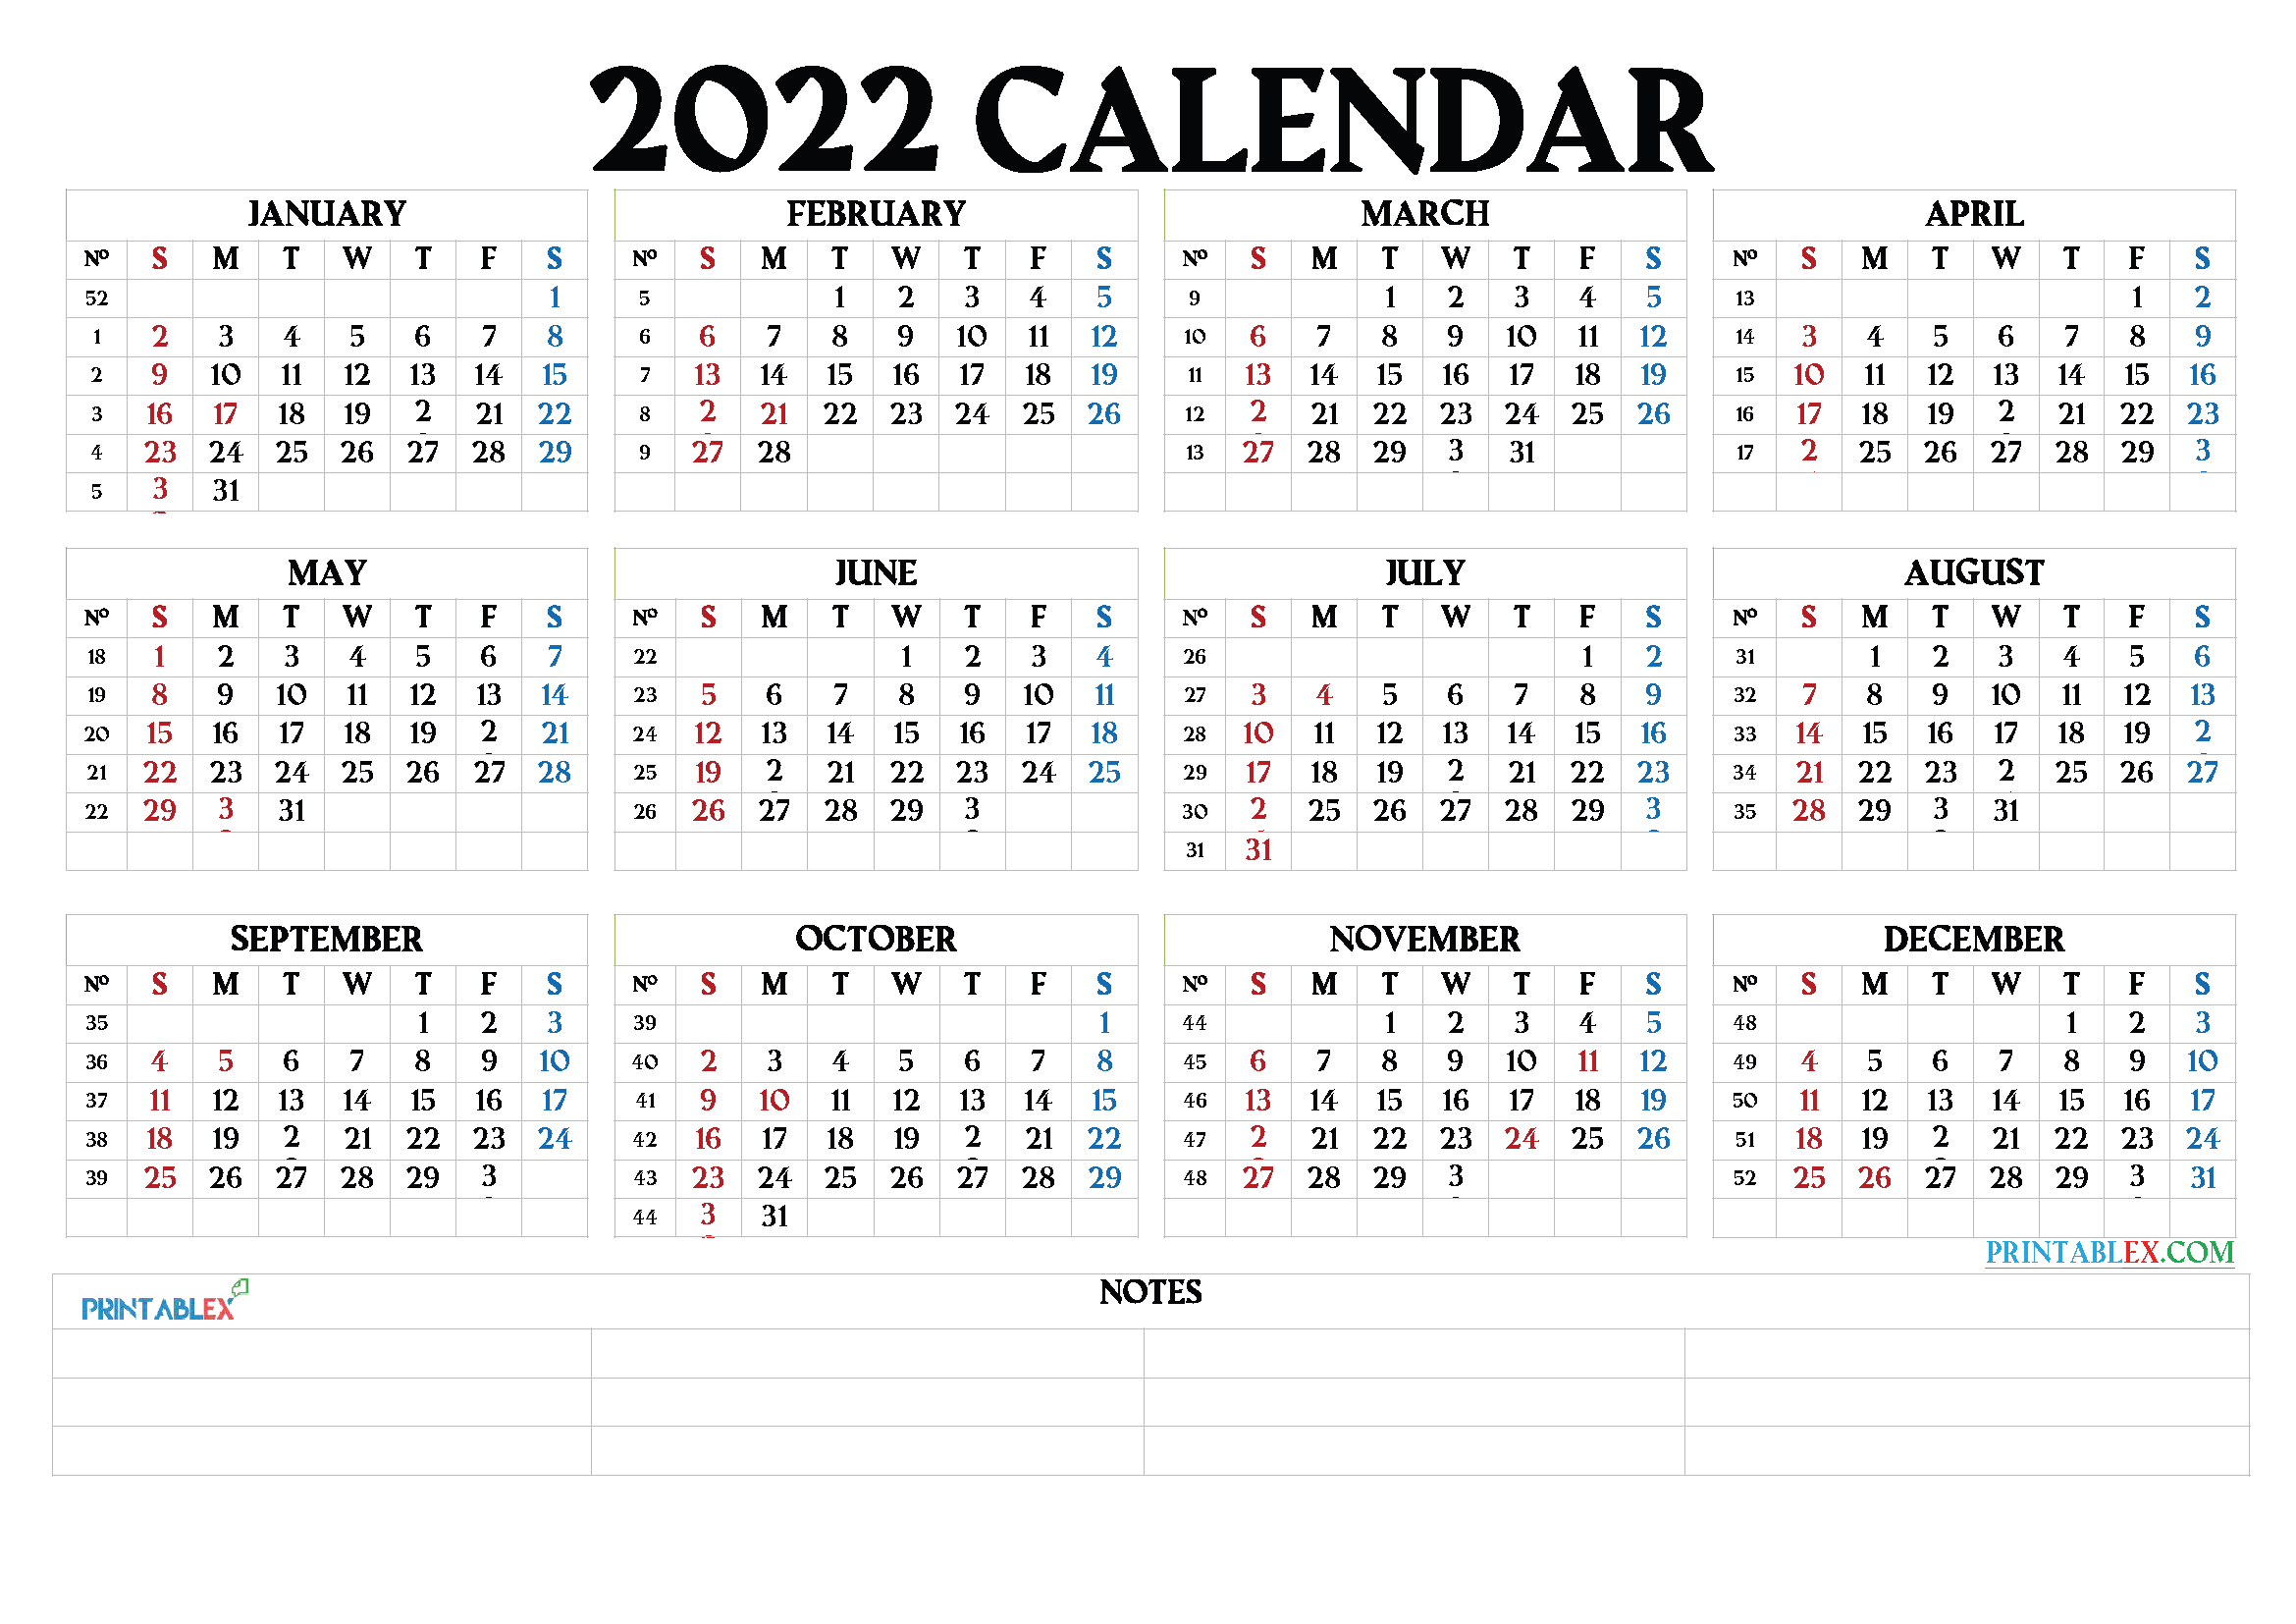 Free Printable 2022 Calendar by Month - 22ytw64